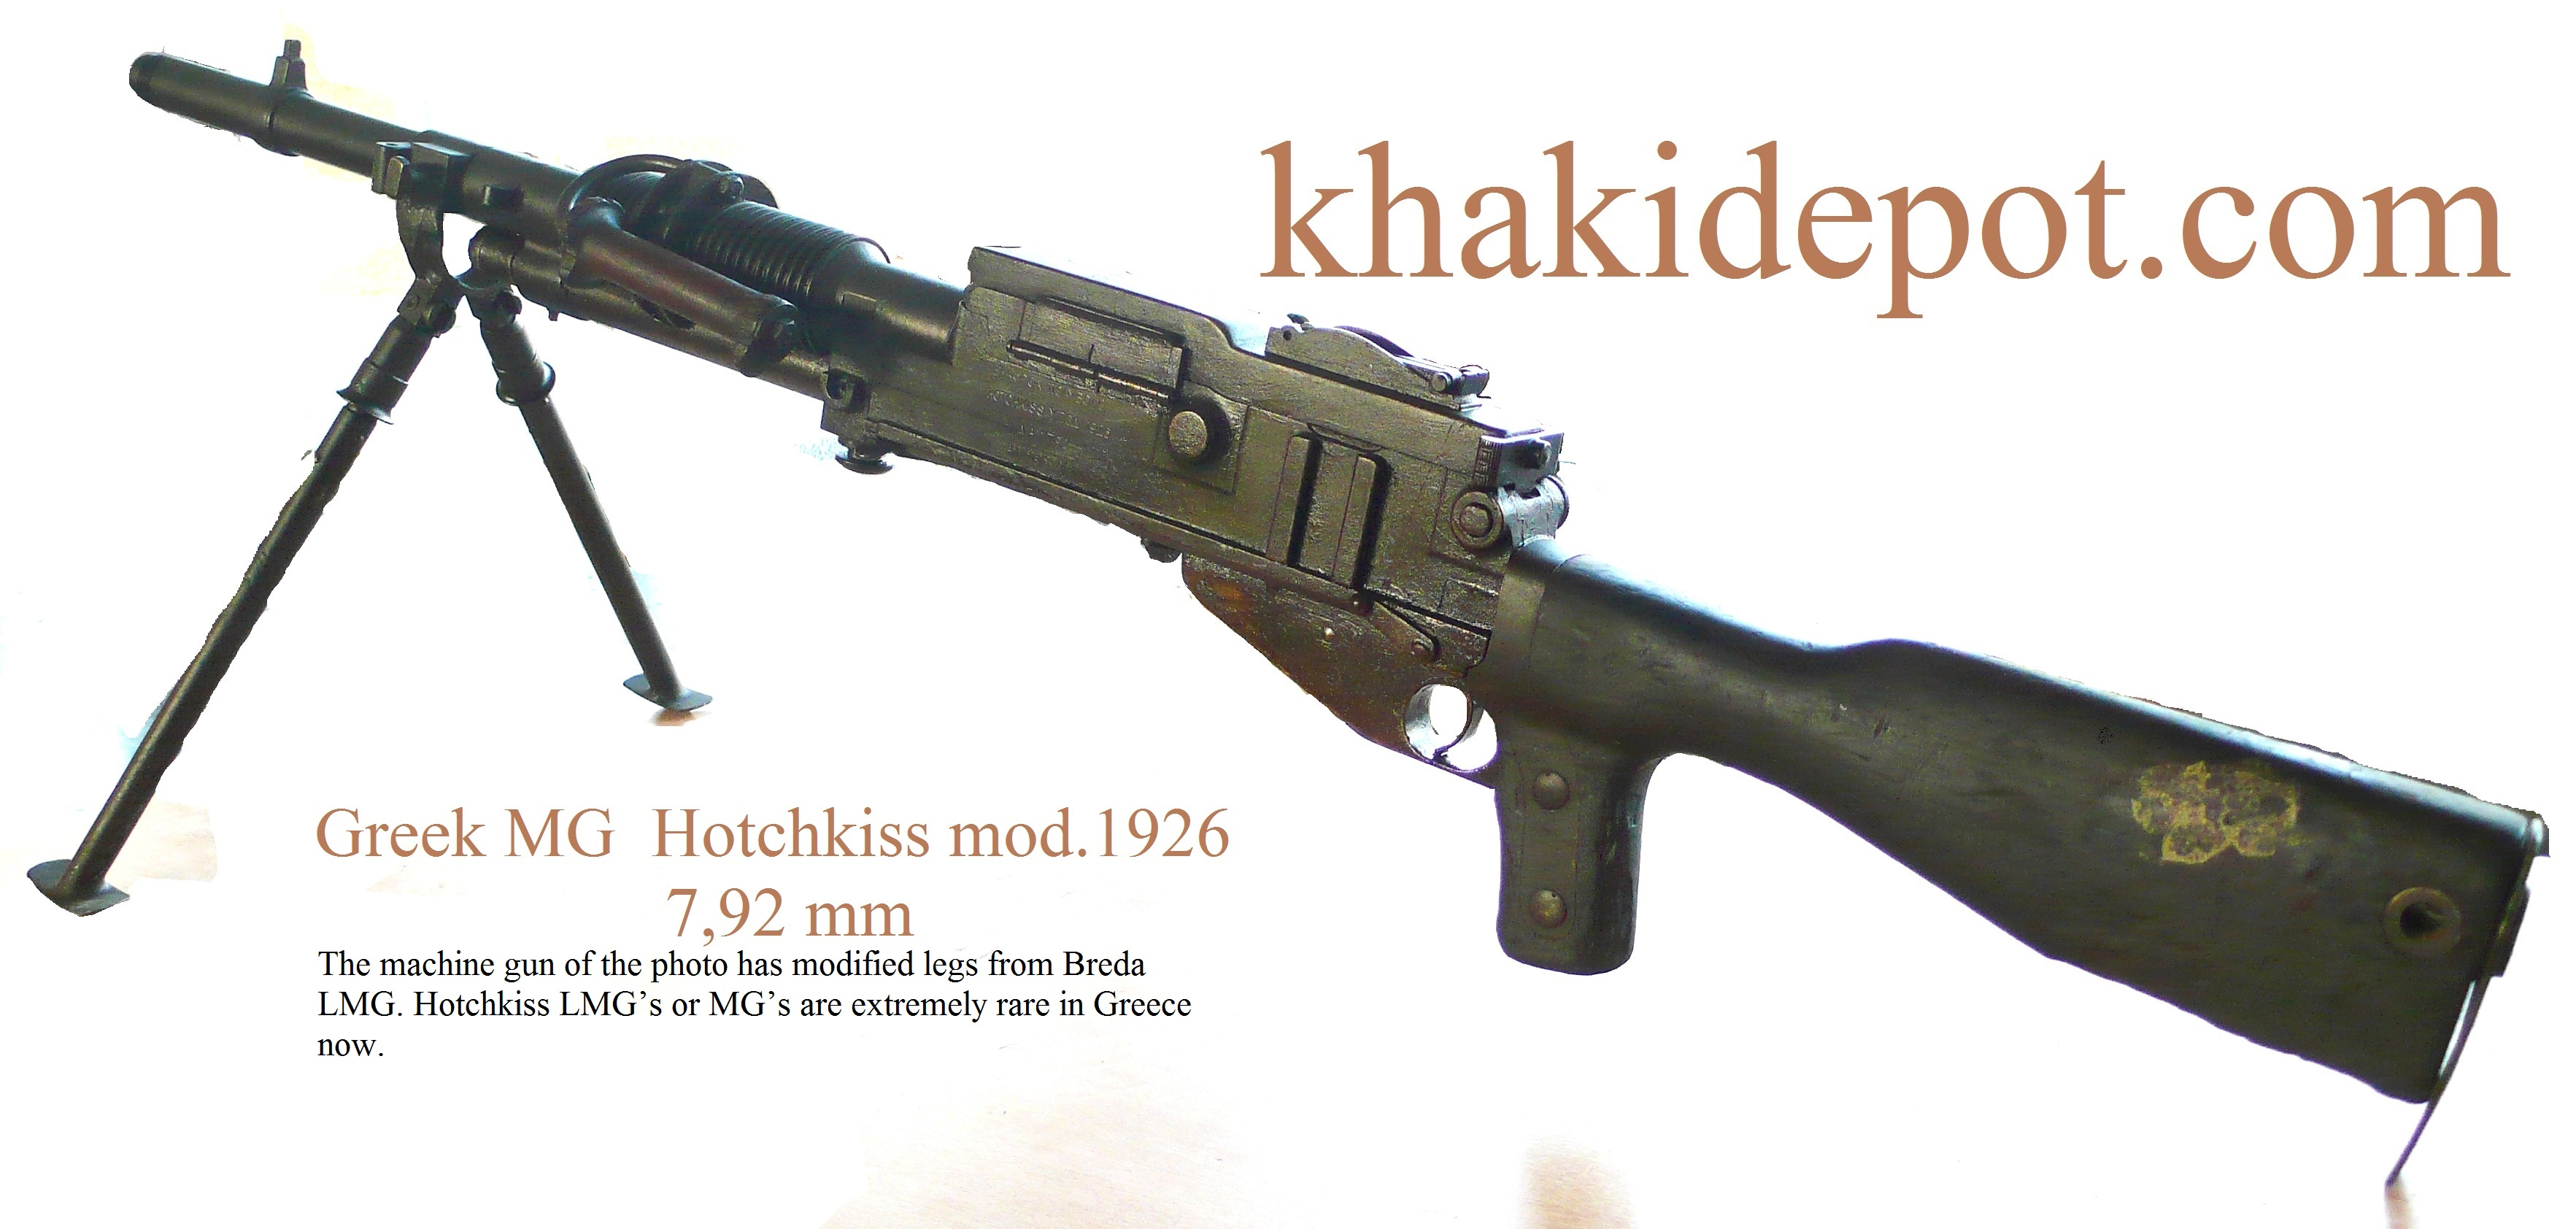 Hotchkiss M1922 Lmg Forgotten Weapons Each Of The 60 M1 Garand Parts From Az With Images Diagrams And Greek In 8mm Mauser